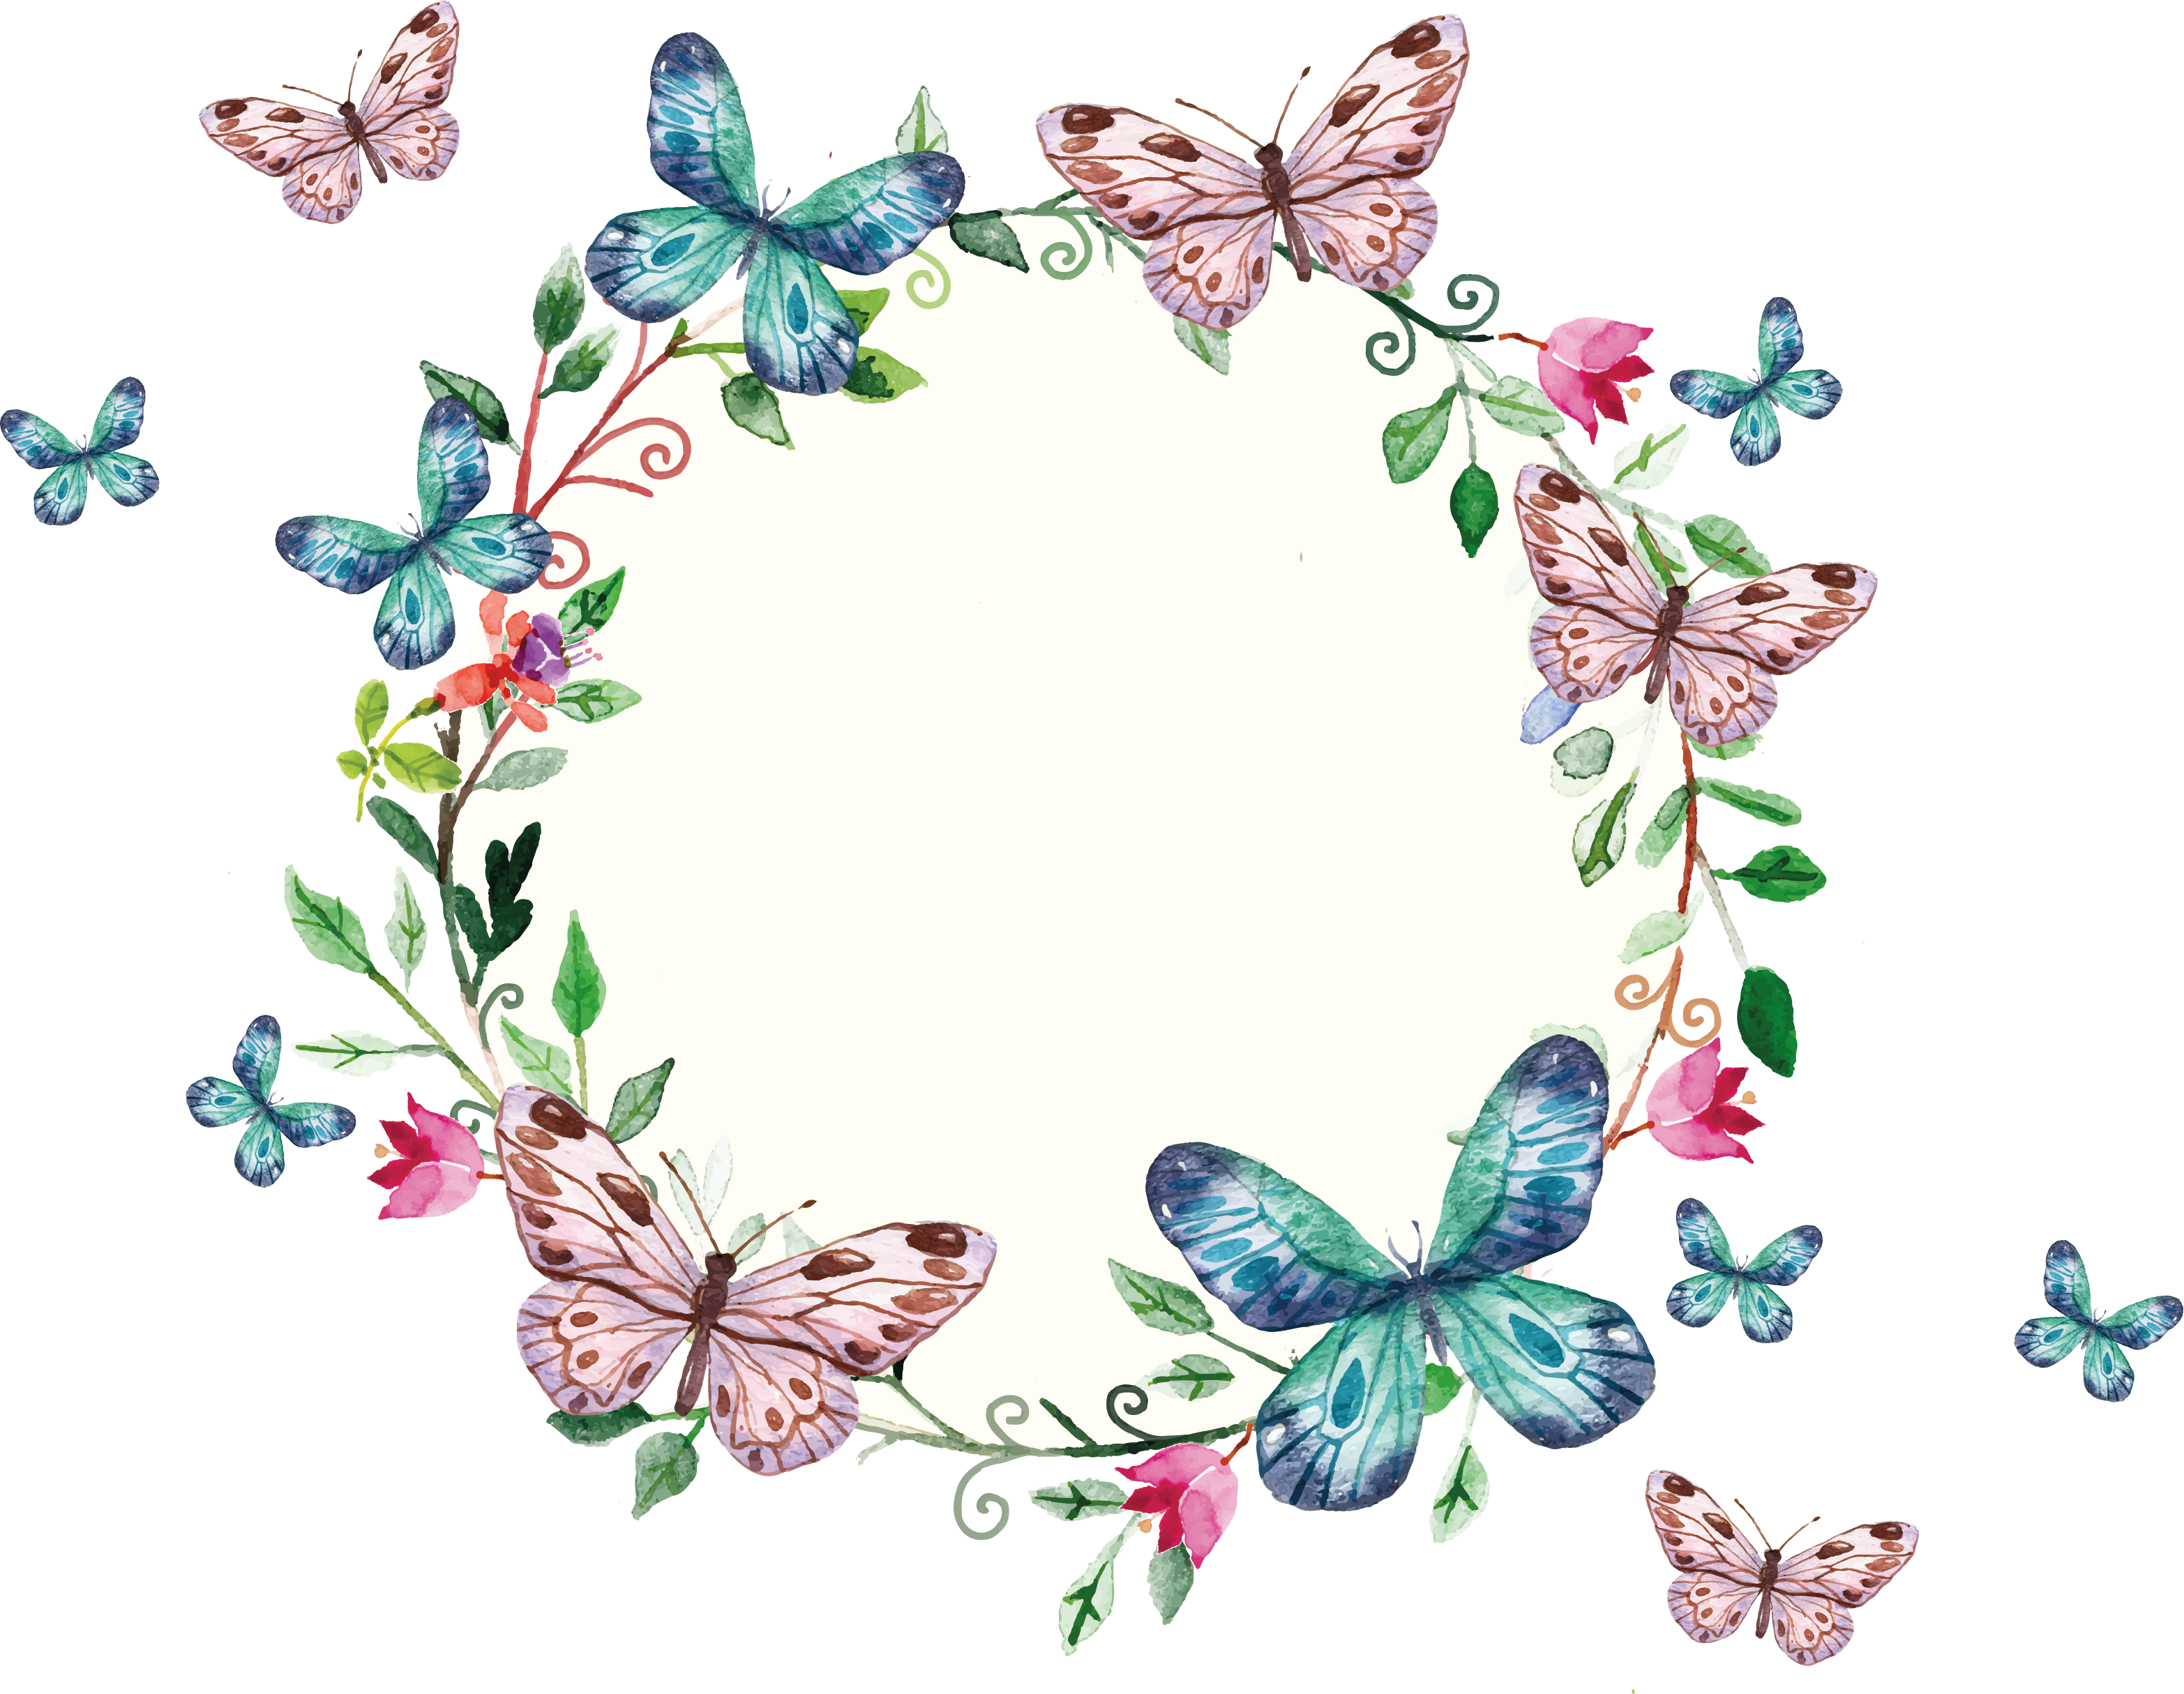 freepi.com / floral wreath and butterflies frame | Renkli Çerçeveler ...